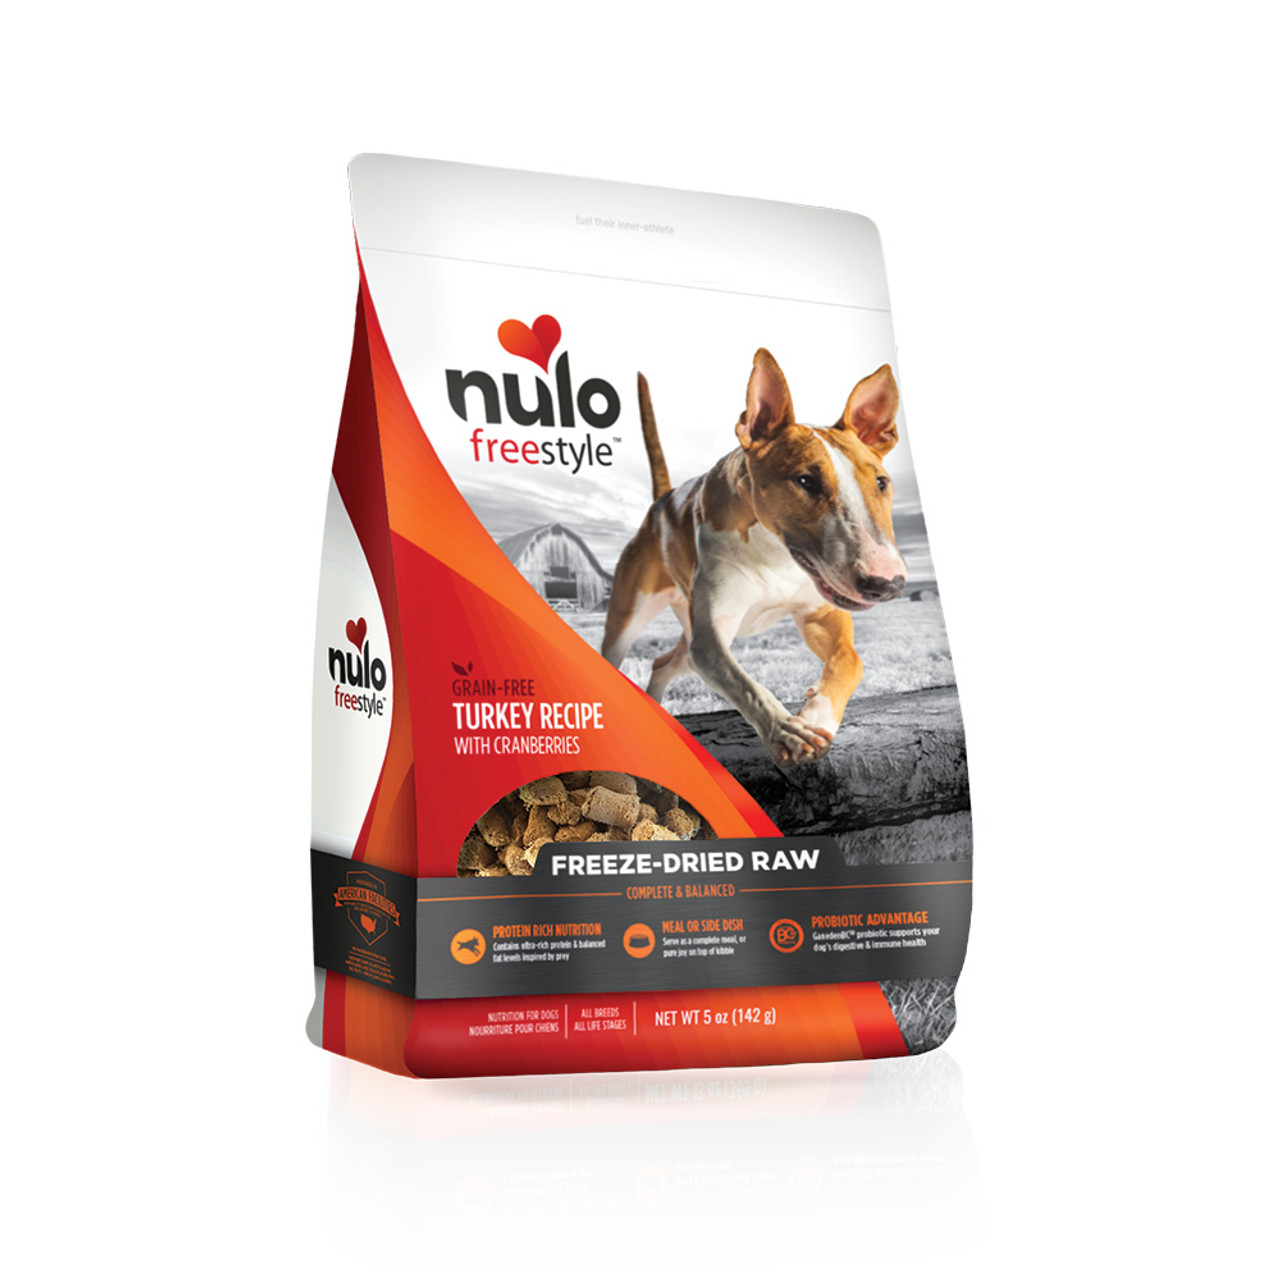 Nulo Freestyle Freeze-Dried Raw Turkey Recipe with Cranberries Dog Food